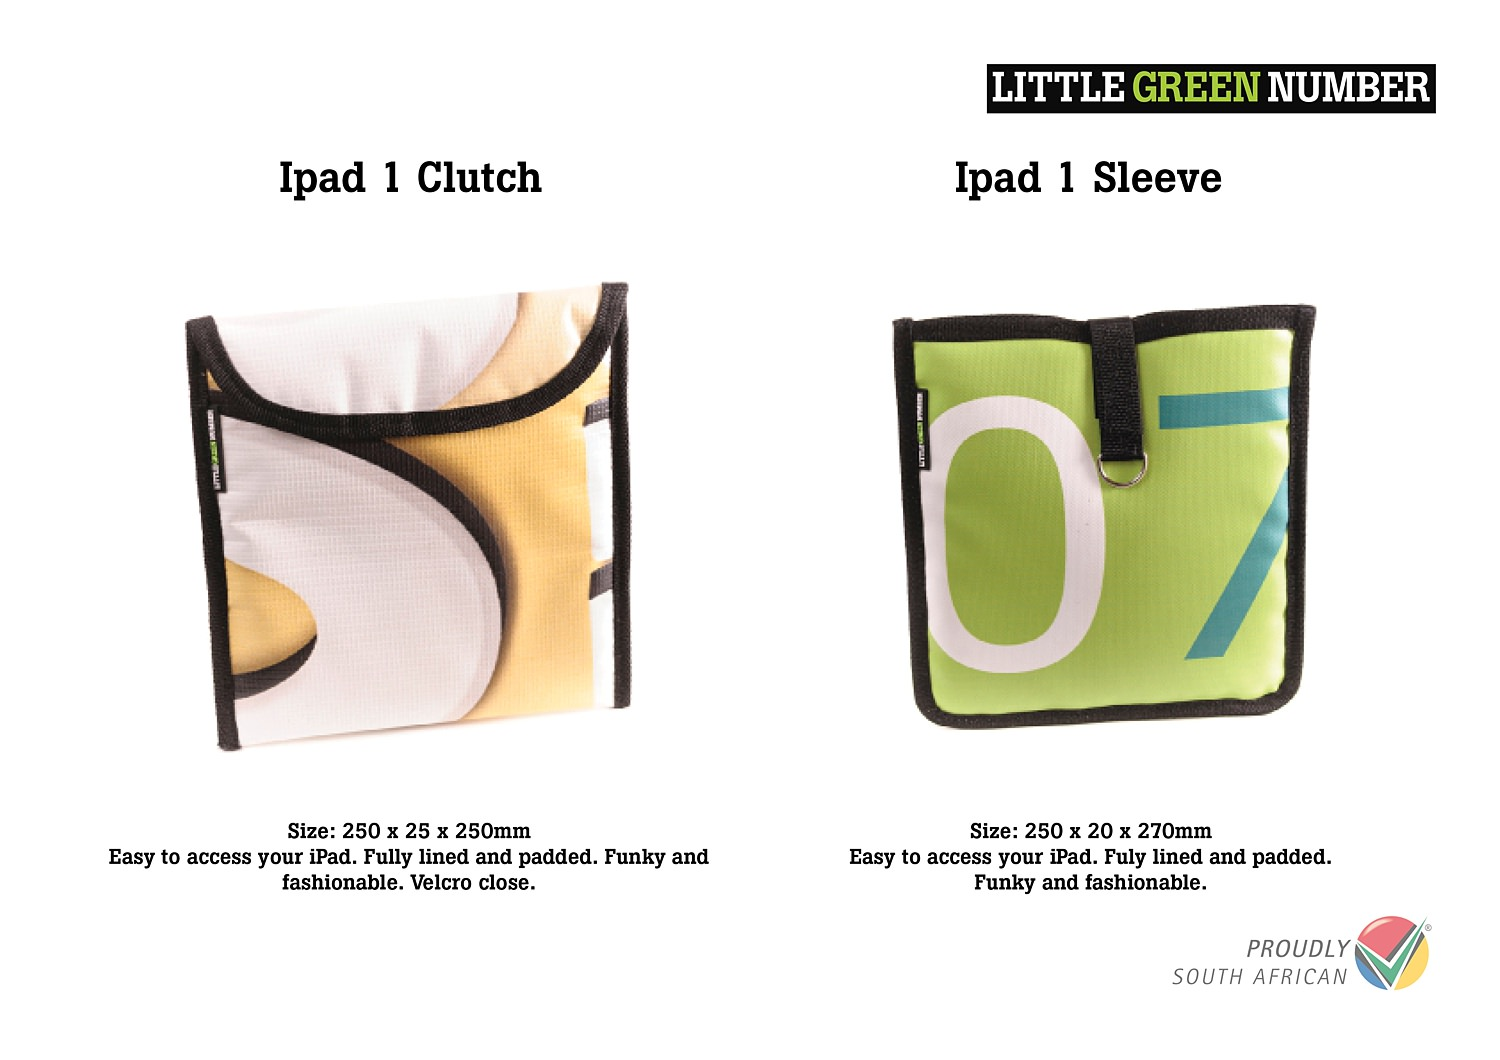 Little Green Number Catalogue Buy1give1 upcycling billboards gauteng24.jpg